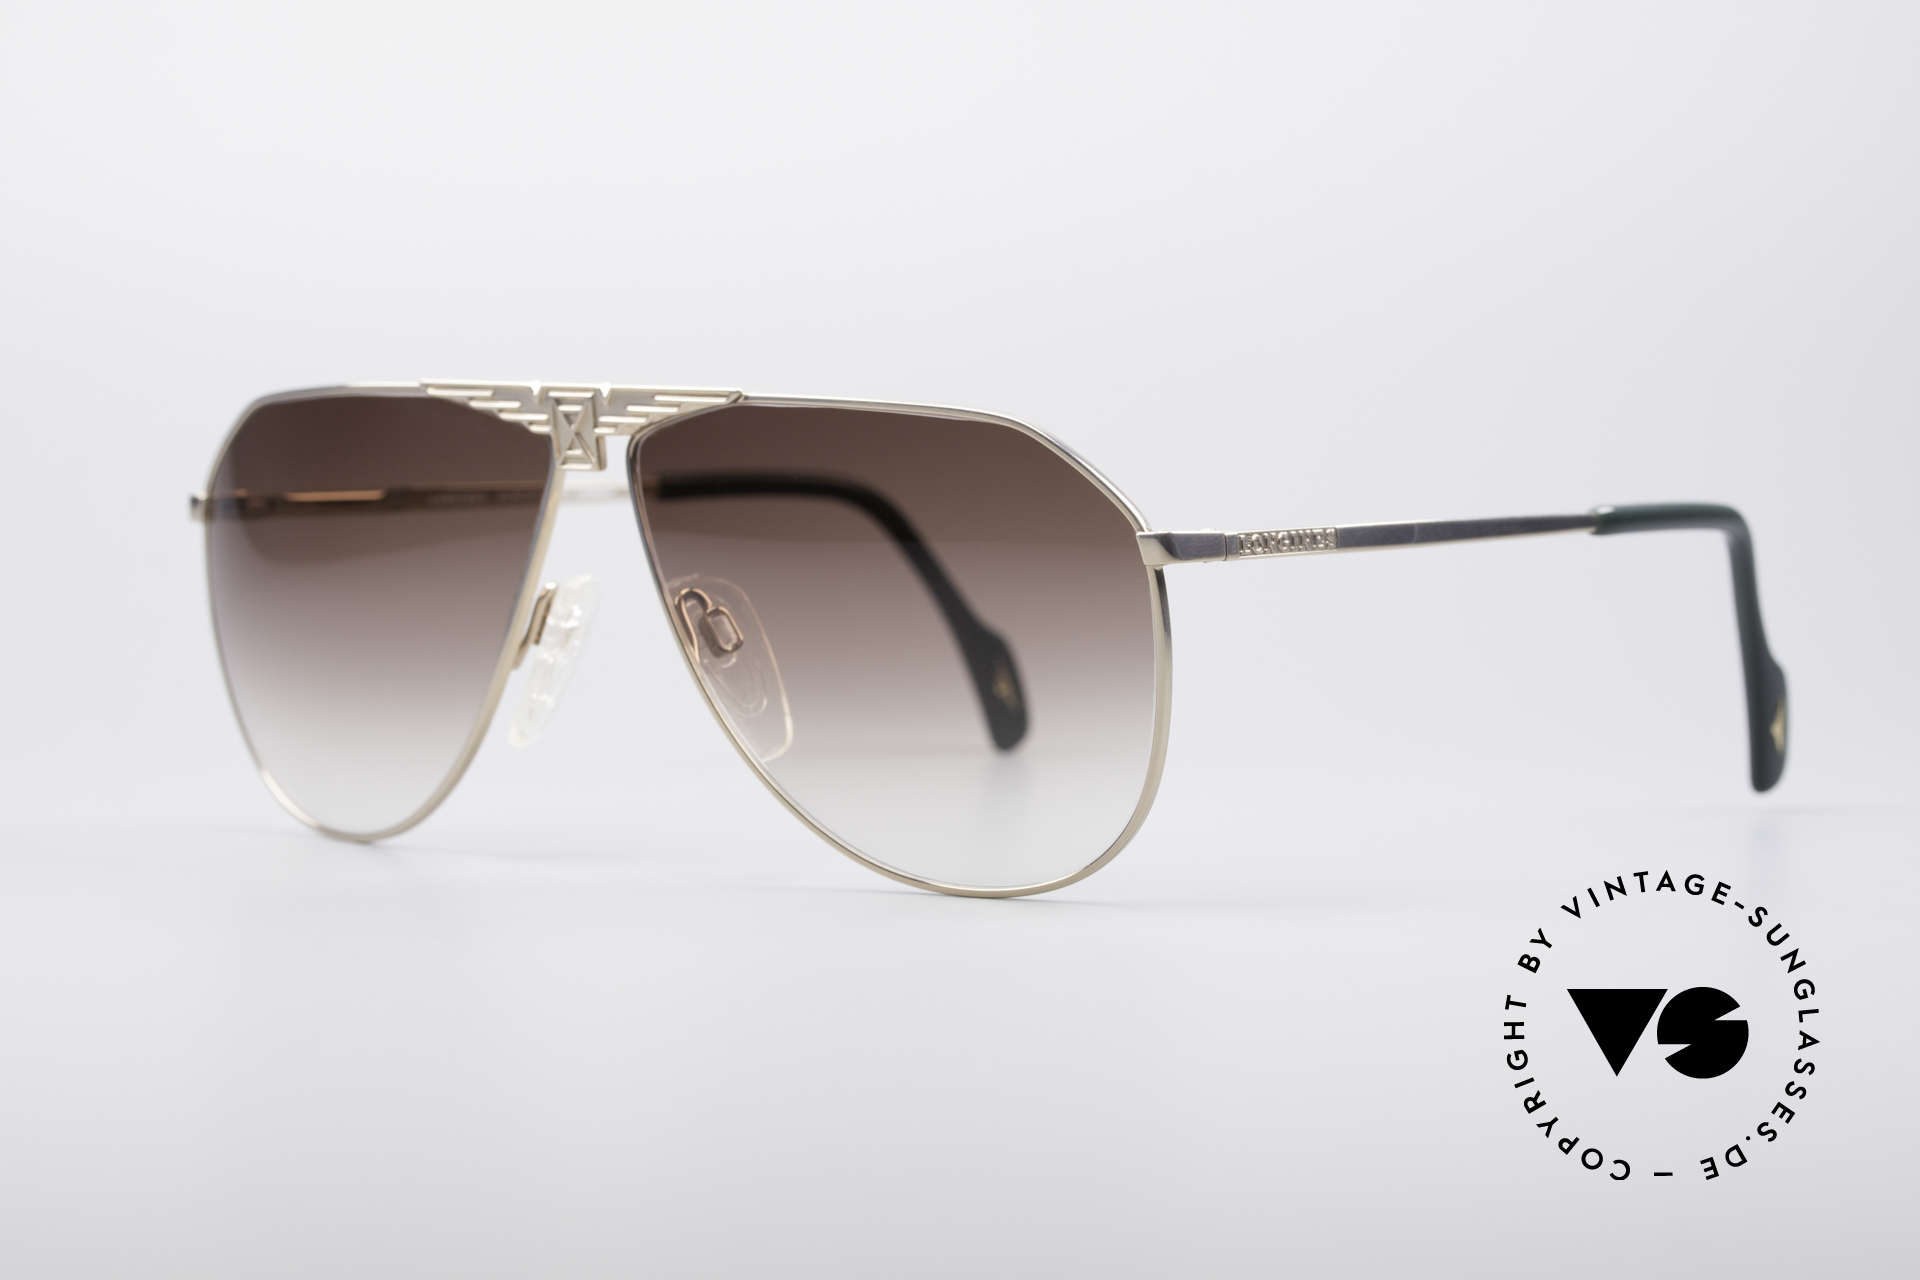 Longines 0150 True Vintage Aviator Shades, made in cooperation with Metzler (made in Germany), Made for Men